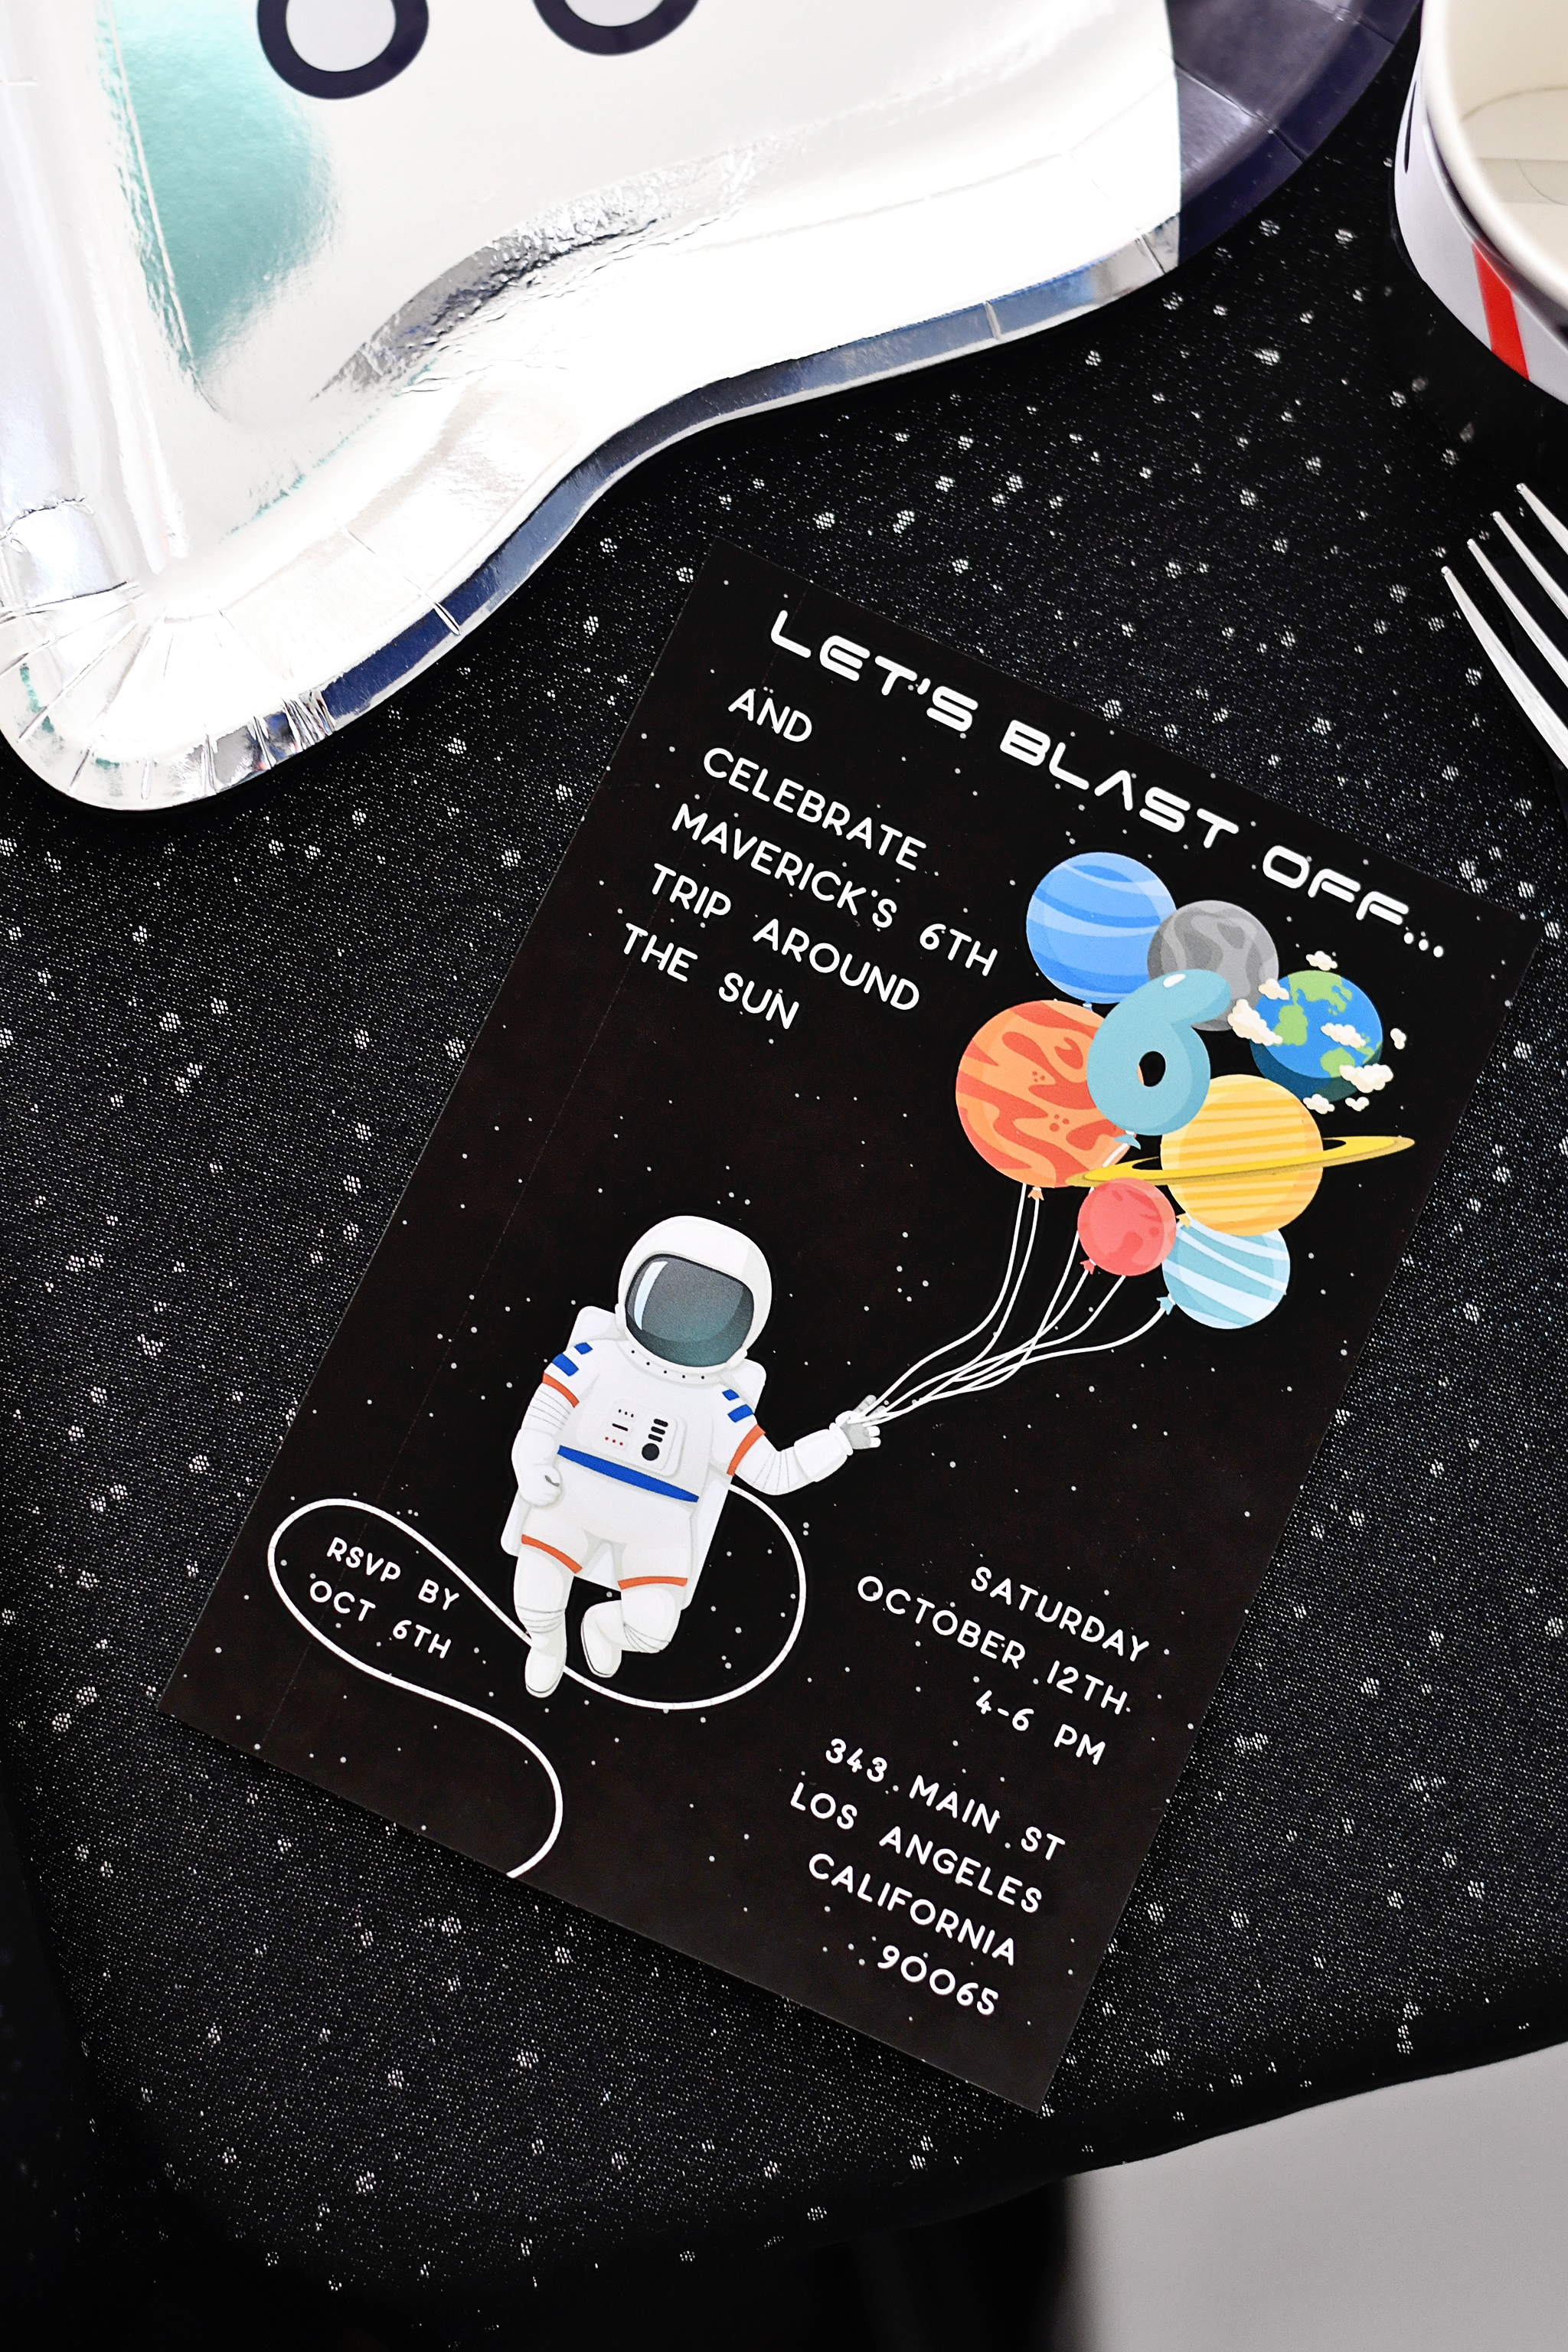 Outer space birthday party invitations for your favorite astronaut!